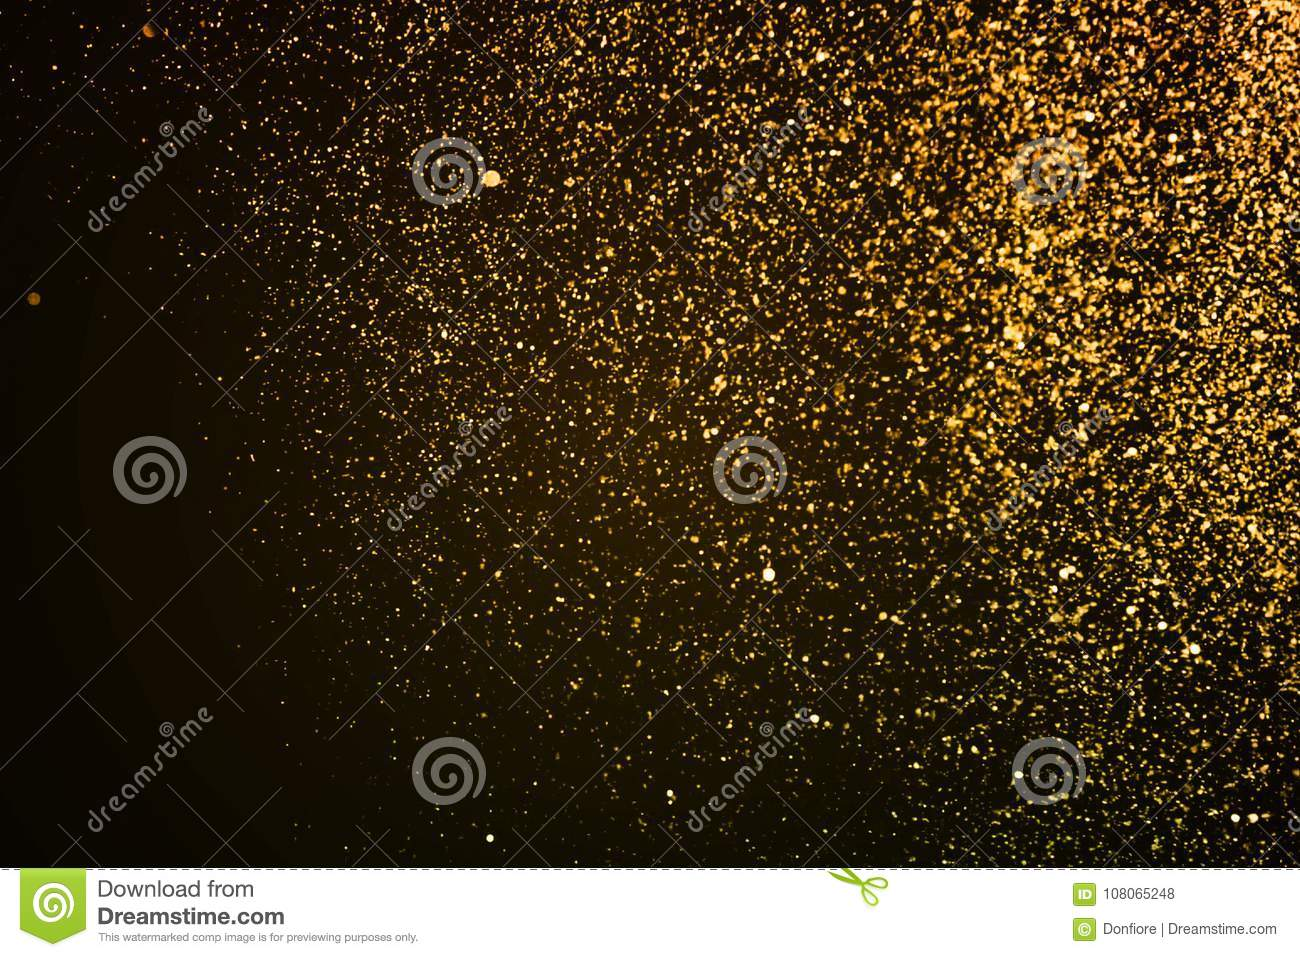 Christmas Gold Sparkle Glitter Explosion Dust Particles Background